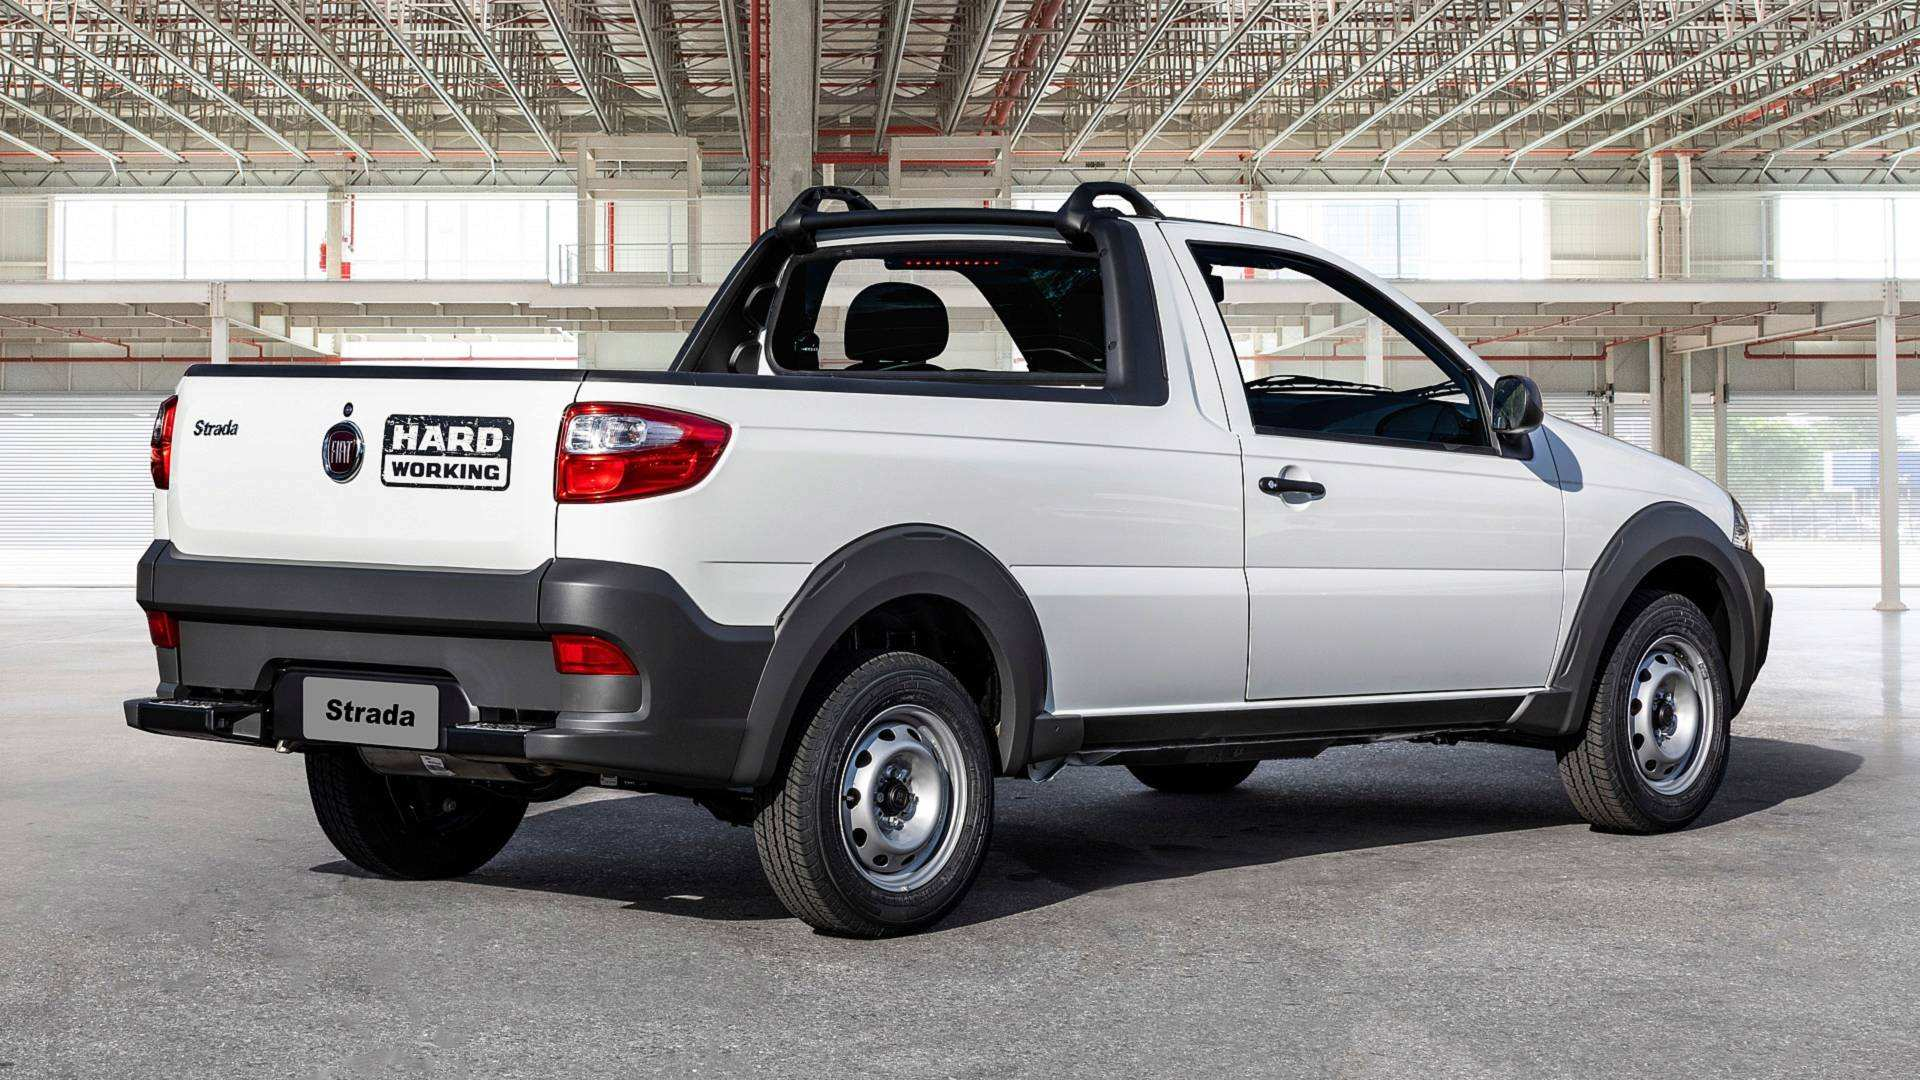 34 Great Fiat Strada 2019 2 Pictures for Fiat Strada 2019 2